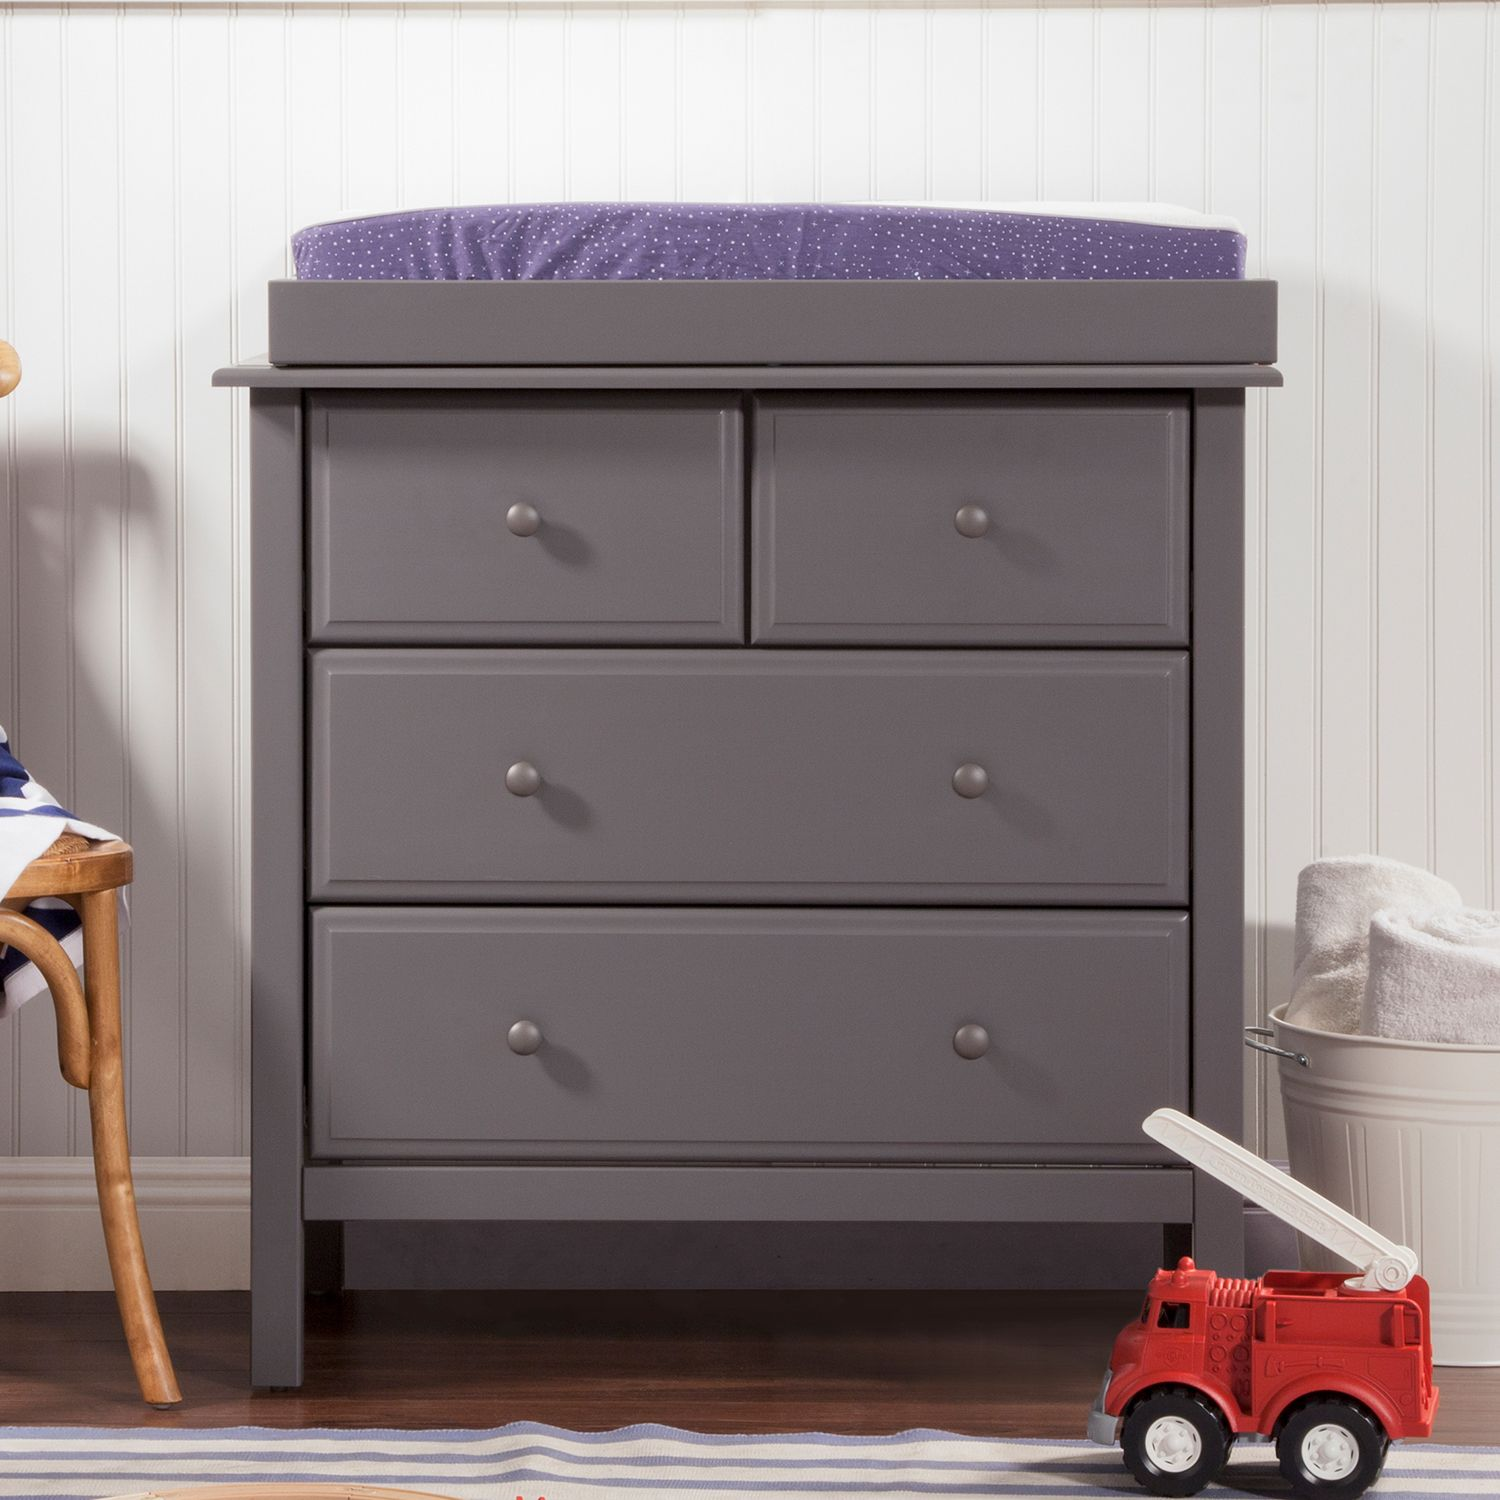 DaVinci Autumn 4 Drawer Changer Dresser